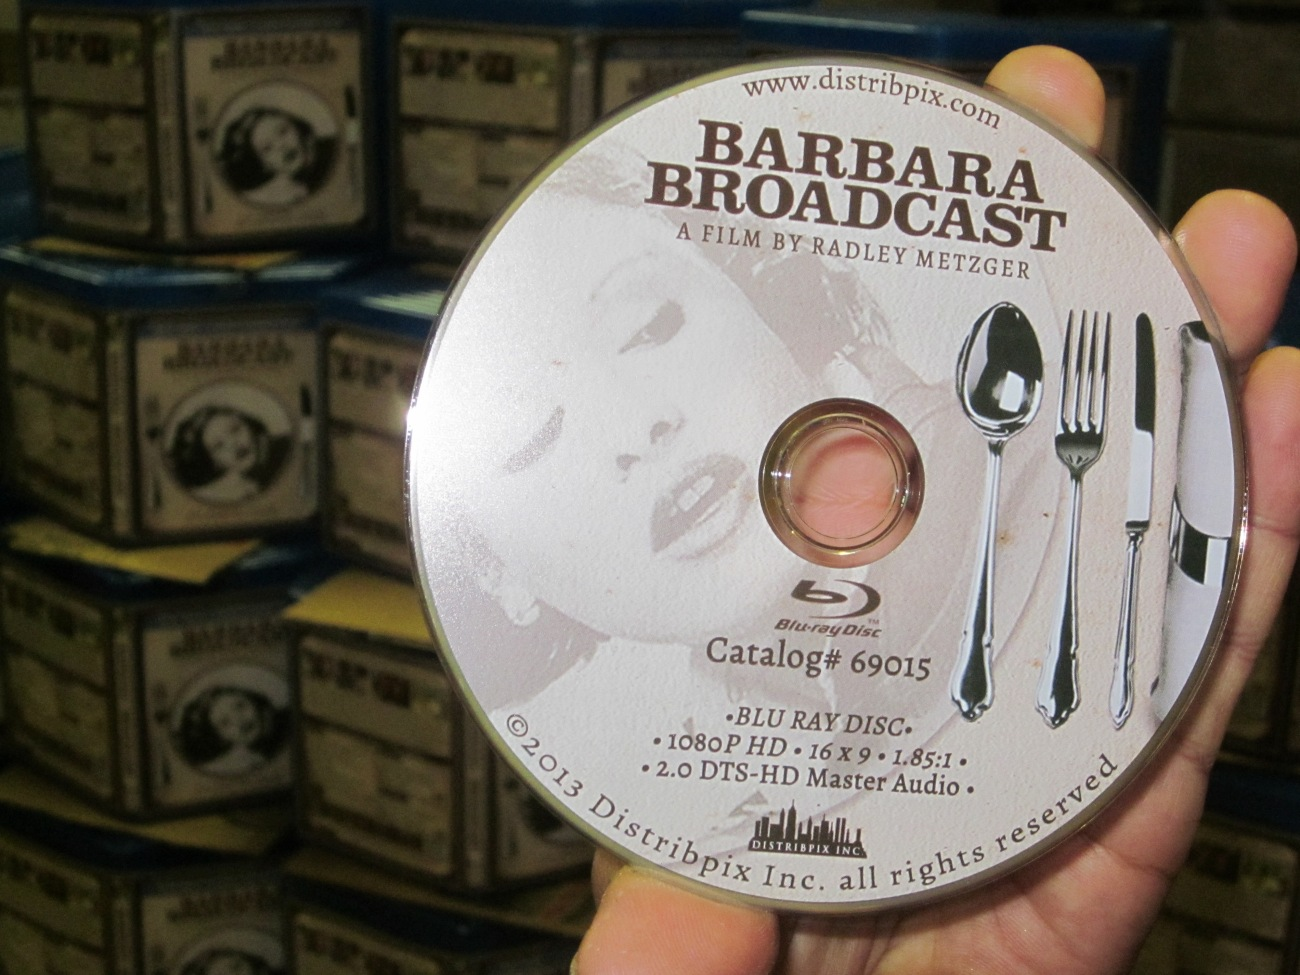 The brand new Blu Ray Disc for Barbara Broadcast- 1080p HD!!